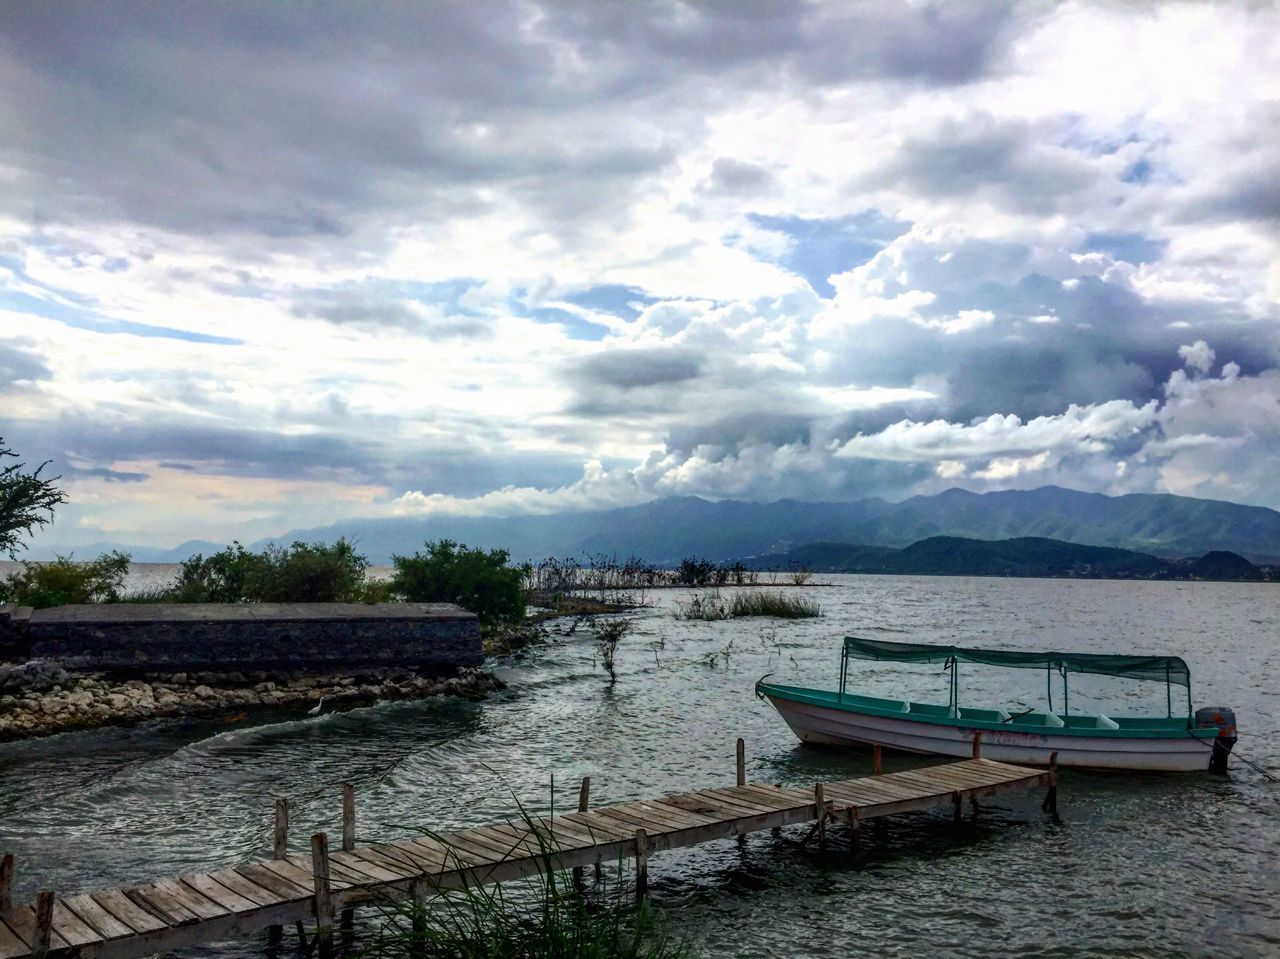 water, sky, cloud - sky, scenics, tranquility, nature, nautical vessel, no people, beauty in nature, outdoors, tranquil scene, day, transportation, moored, mountain, lake, tree